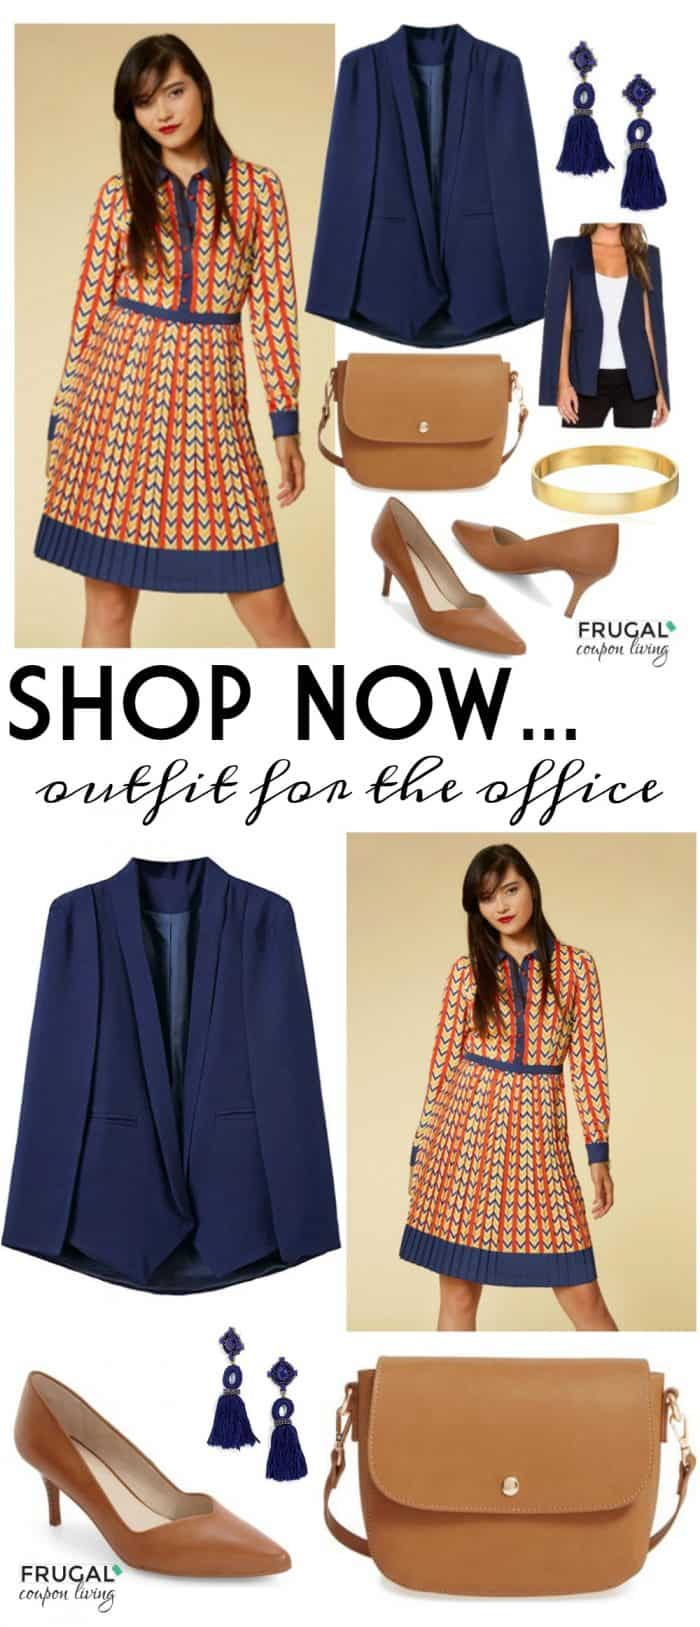 orange-and-navy-work-outfit-frugal-coupon-living-frugal-fashion-friday-long